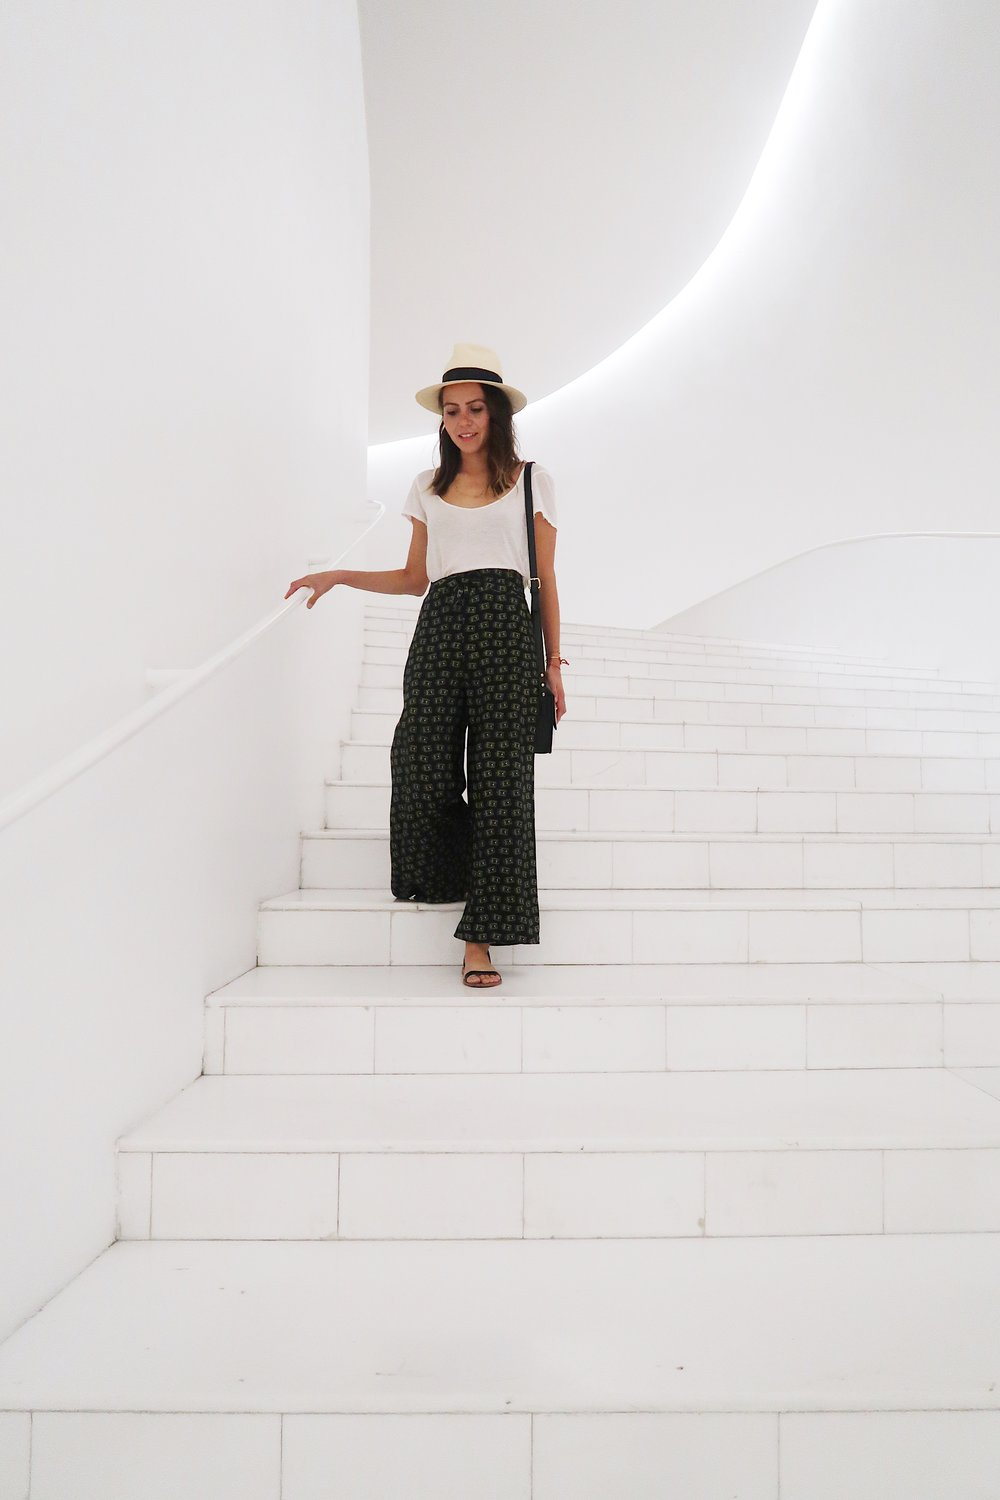 The inside of the museum is all white and looks stunning! So clean and bright and perfect for photos like this - lol.